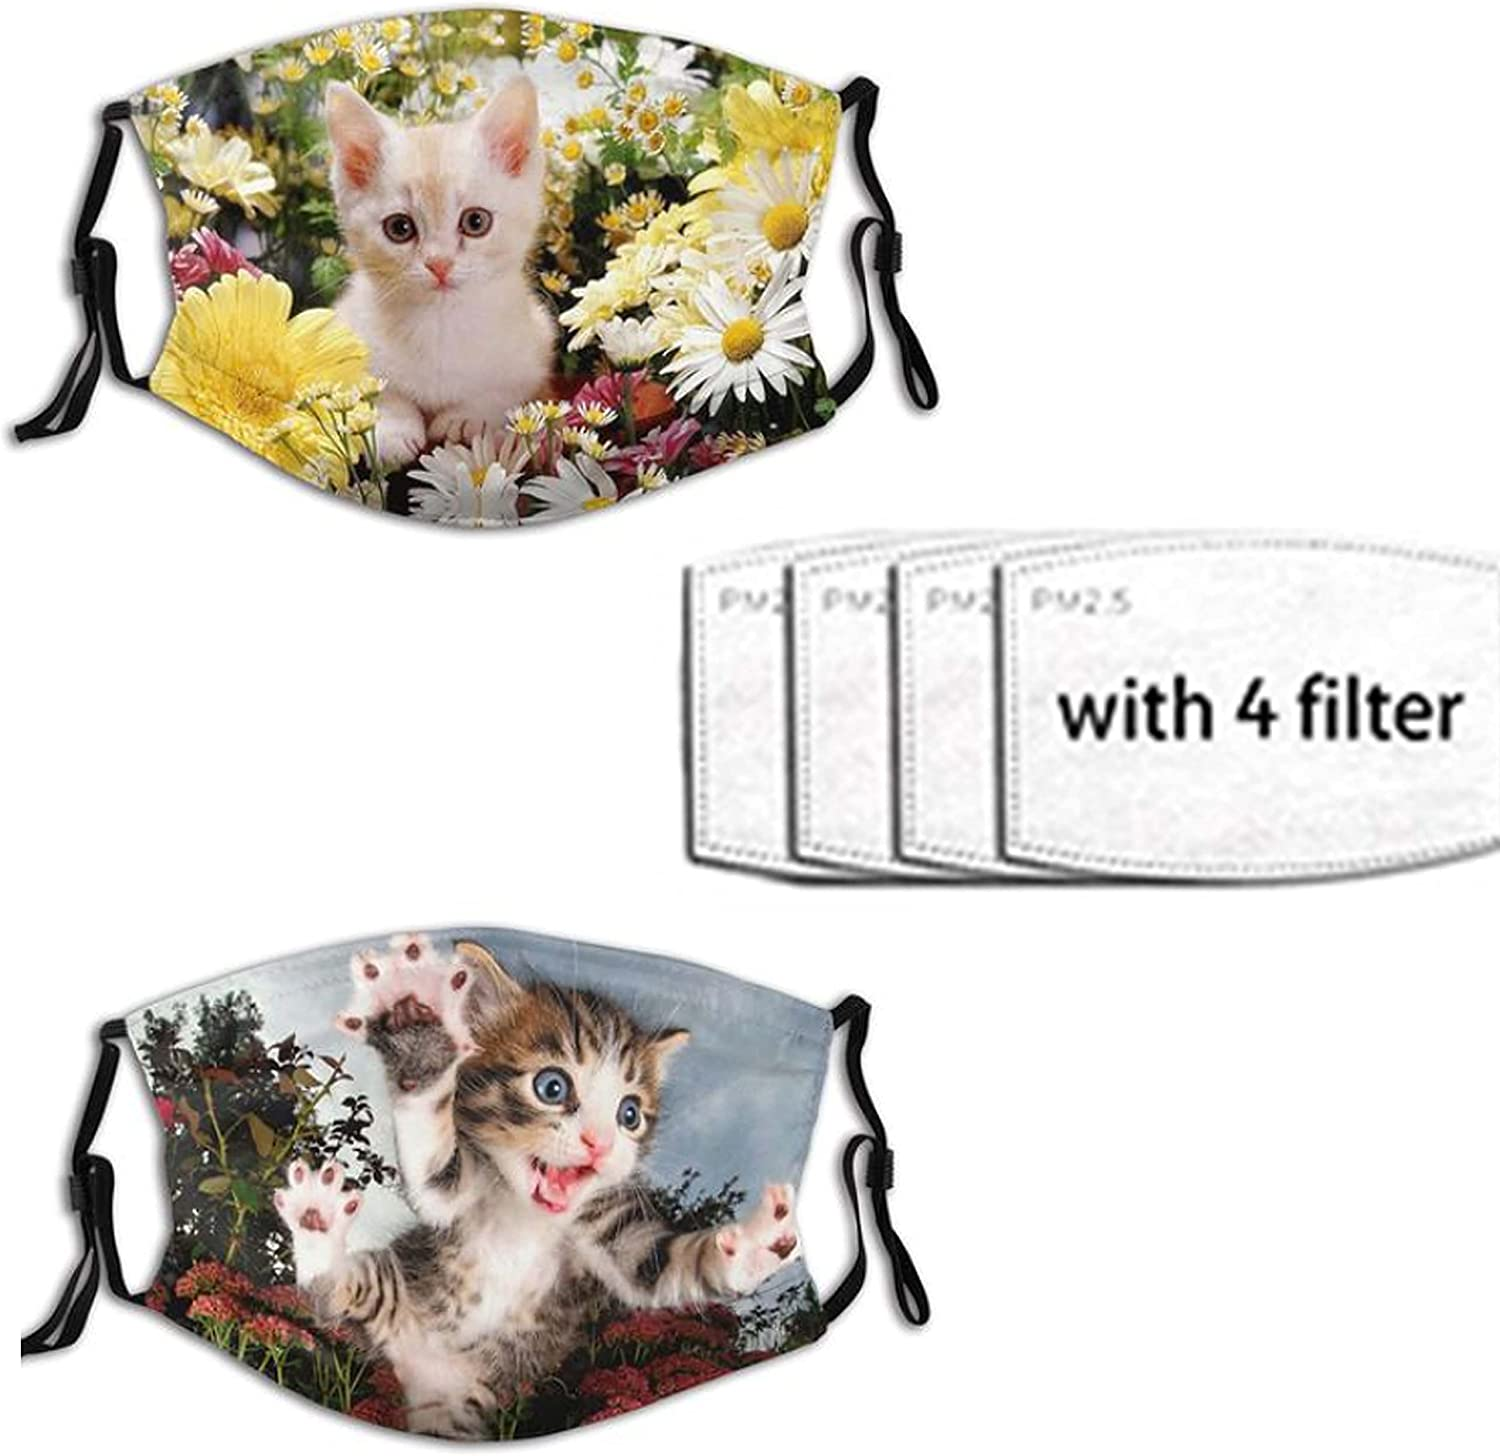 2pcs Cute Cat Face Mask for Adults Men Women,Washable & Adjustable Comfortable Fashion Bandanas Balaclava with 4 Filters